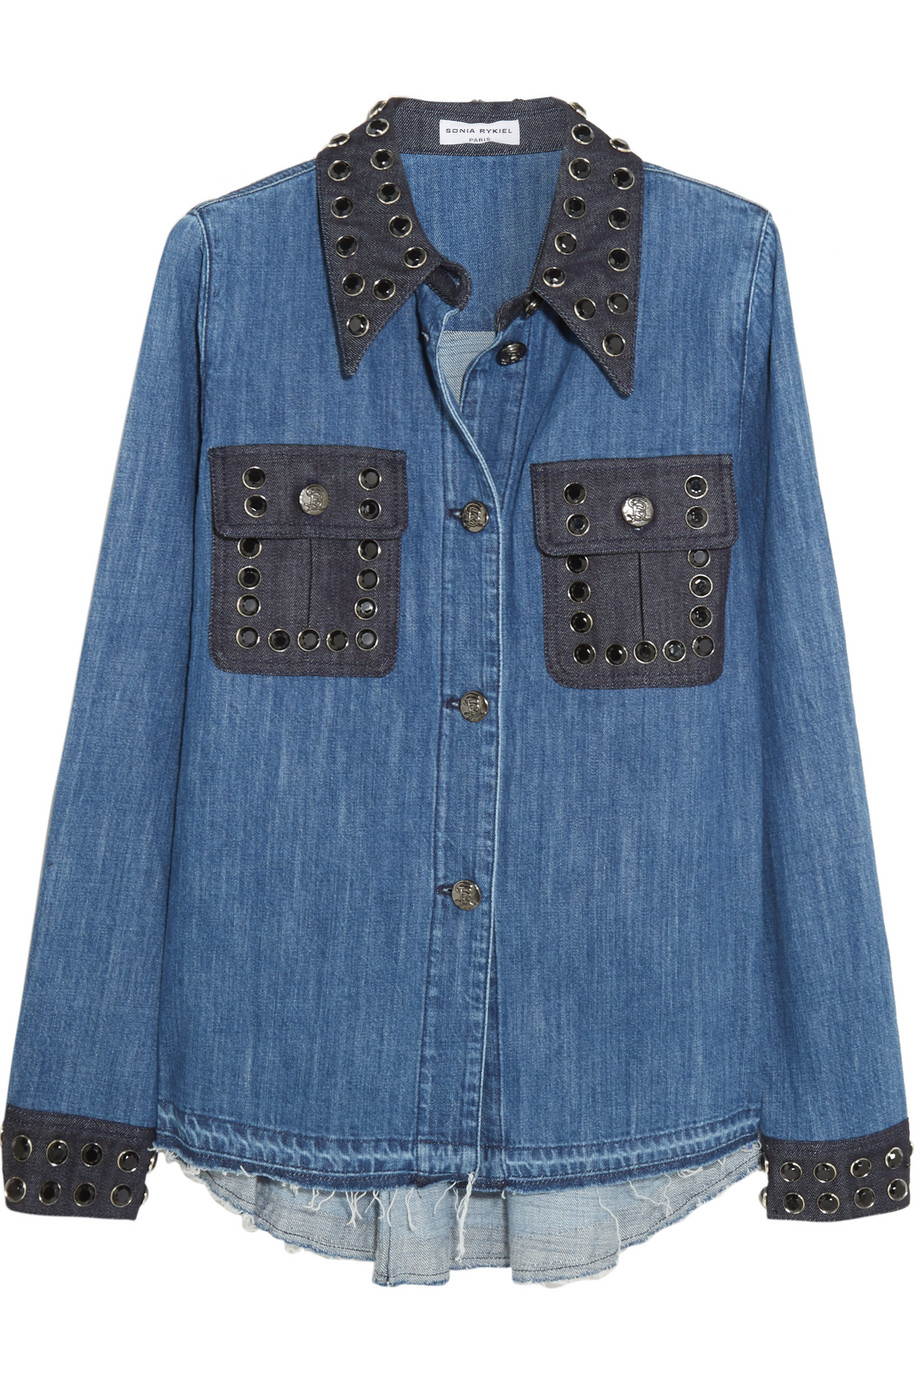 Sonia Rykiel Crystal-Embellished Two-Tone Denim Shirt, Blue, Women's, Size: 36